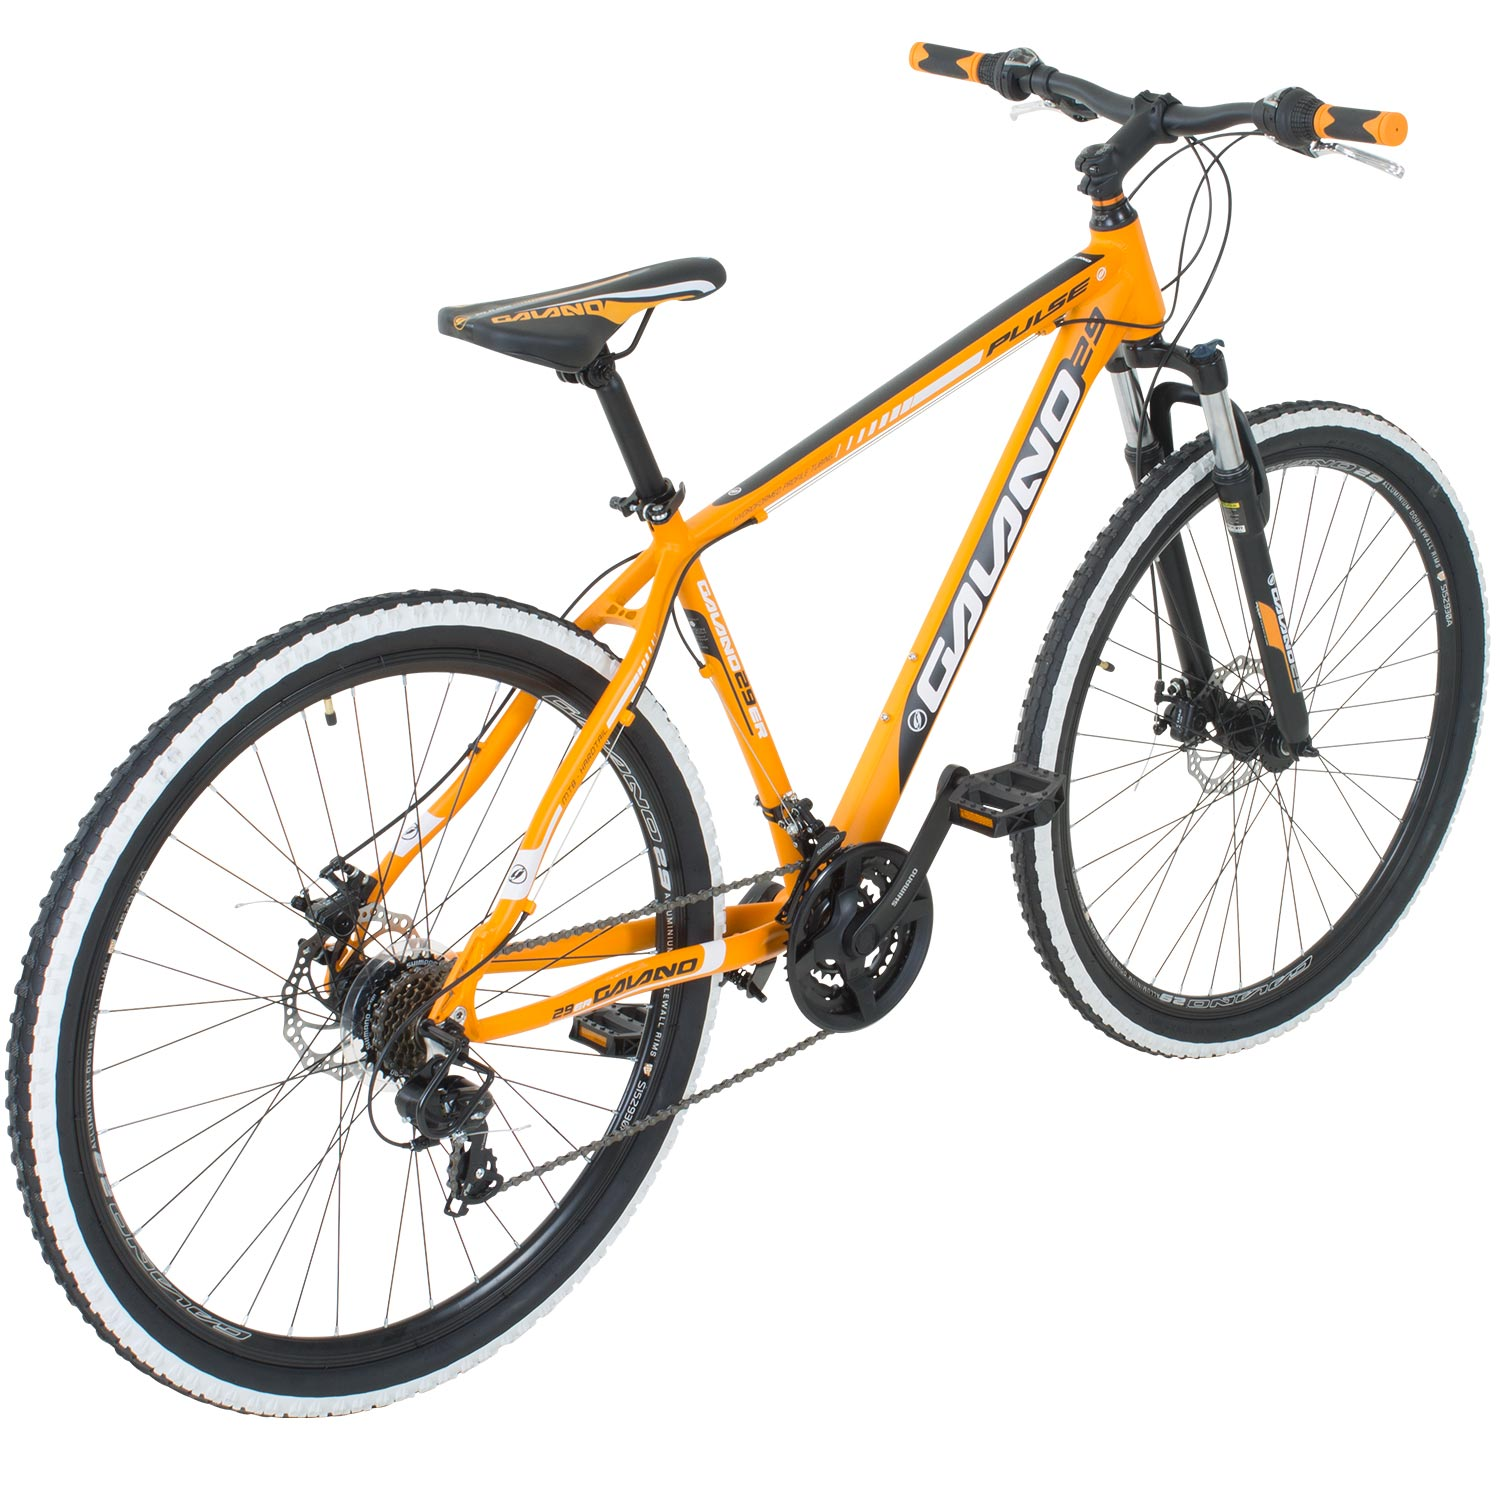 galano toxic 29 zoll mountainbike hardtail mtb fahrrad. Black Bedroom Furniture Sets. Home Design Ideas